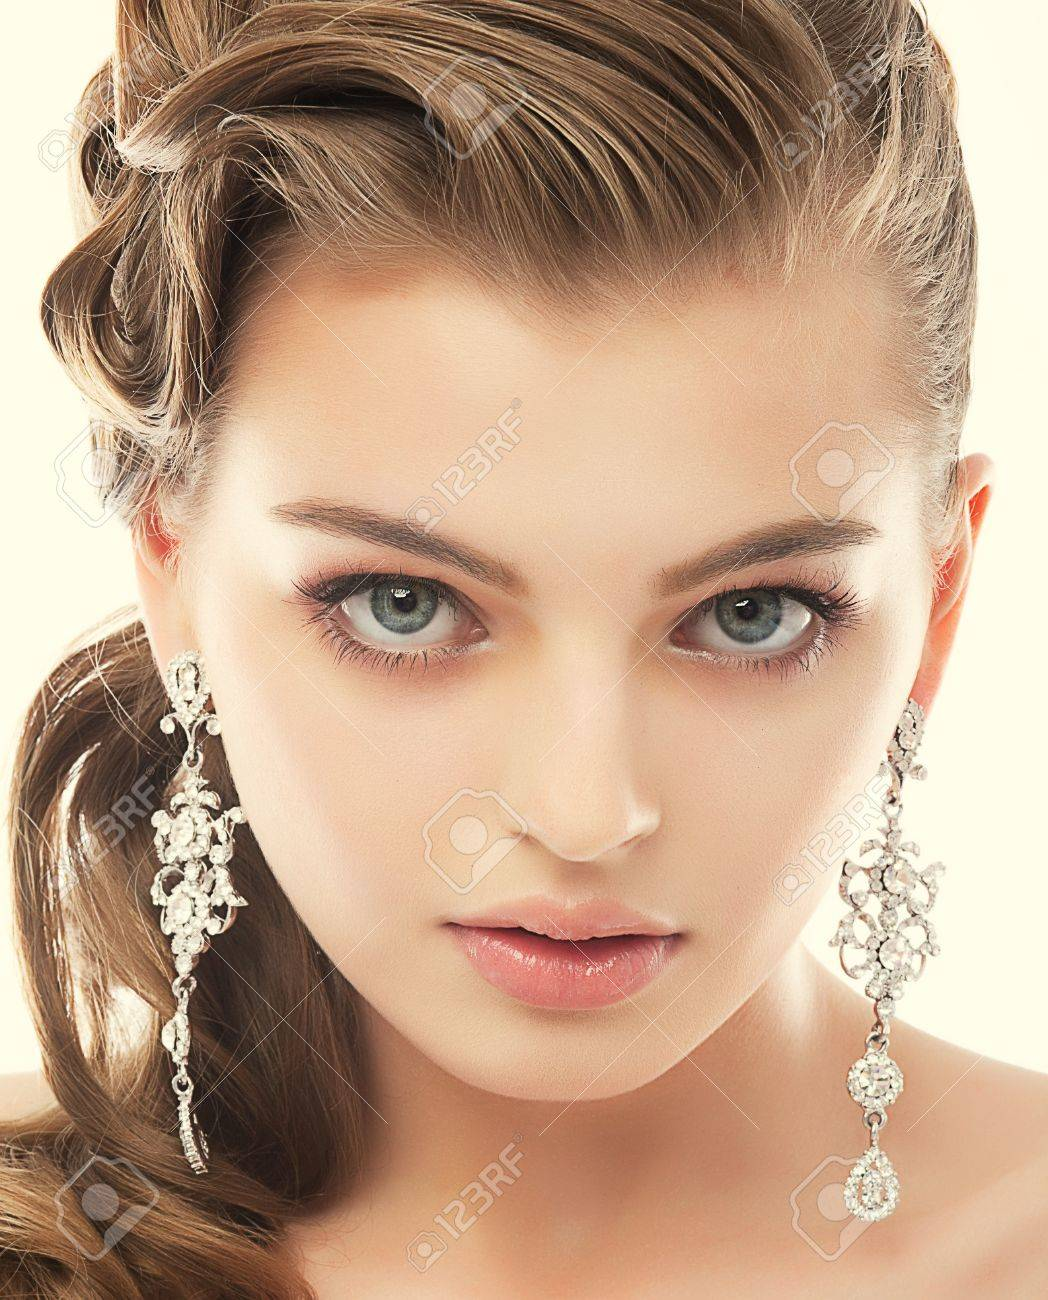 Jewelry. Portrait of Gorgeous Exquisite Woman with Shiny Earrings. Refinement Stock Photo - 19000253